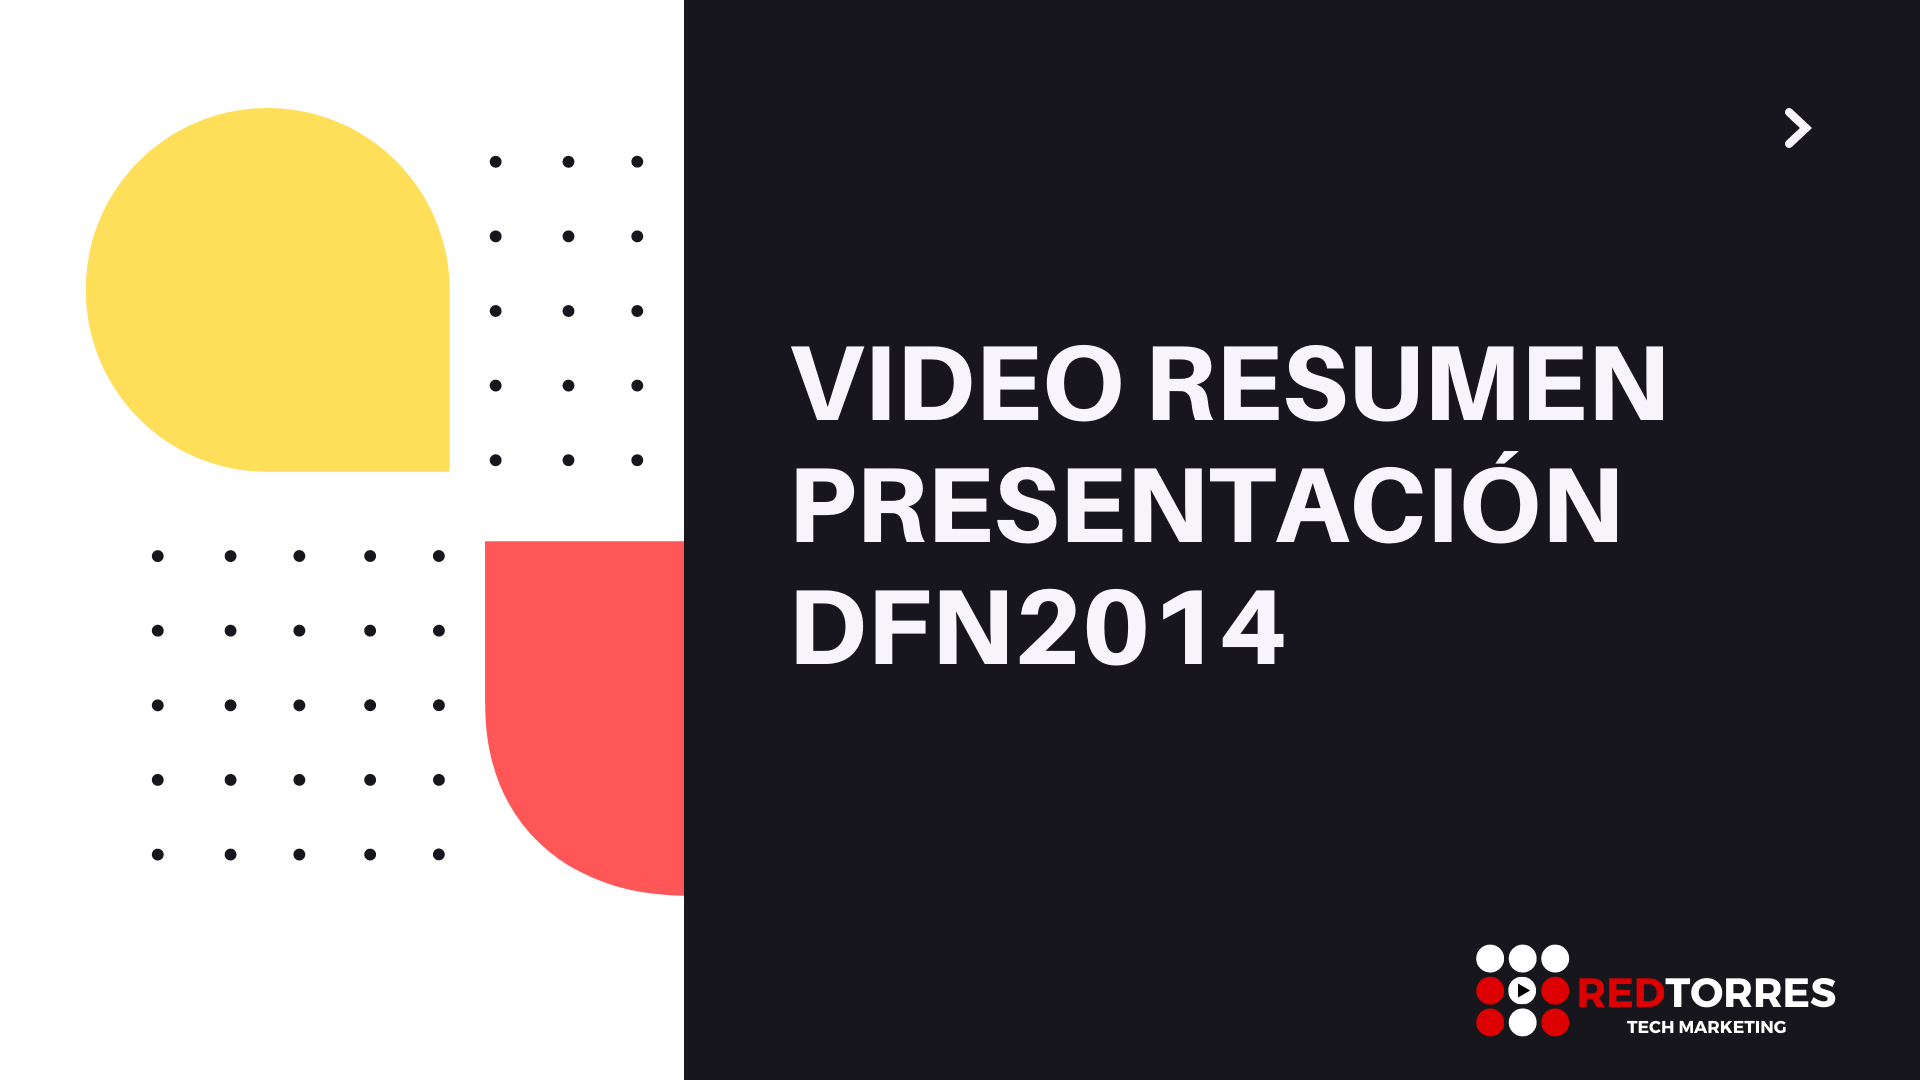 Video Resumen Eventos Madrid Presentación DFW2014 | Red Torres